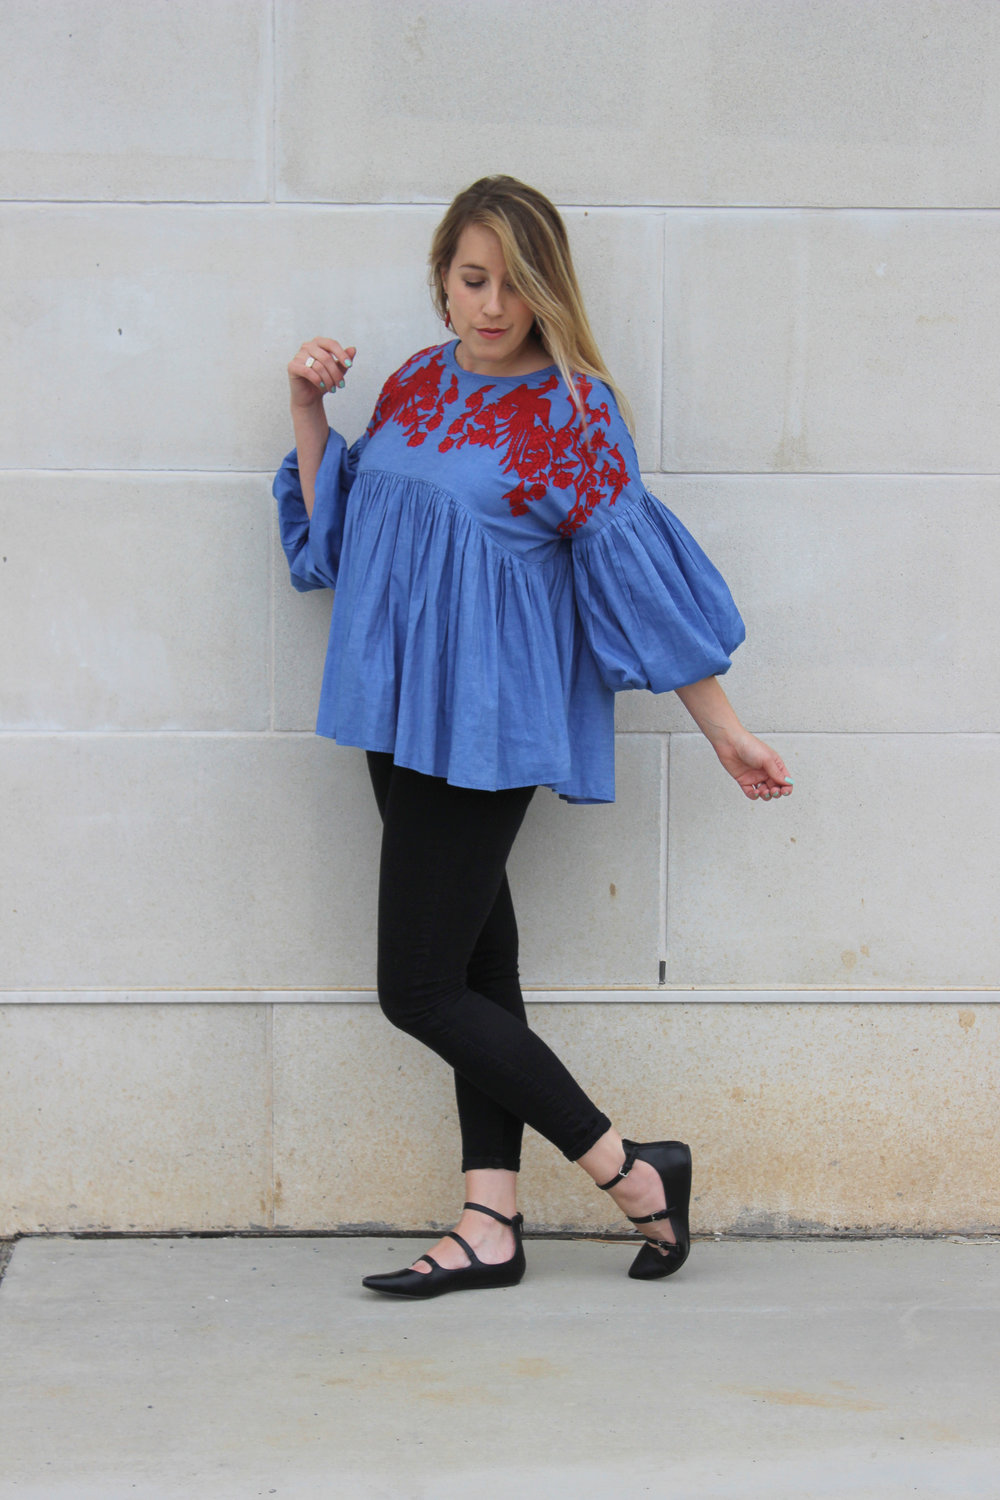 Work Wear Wednesday: Oversized Embroidered Top